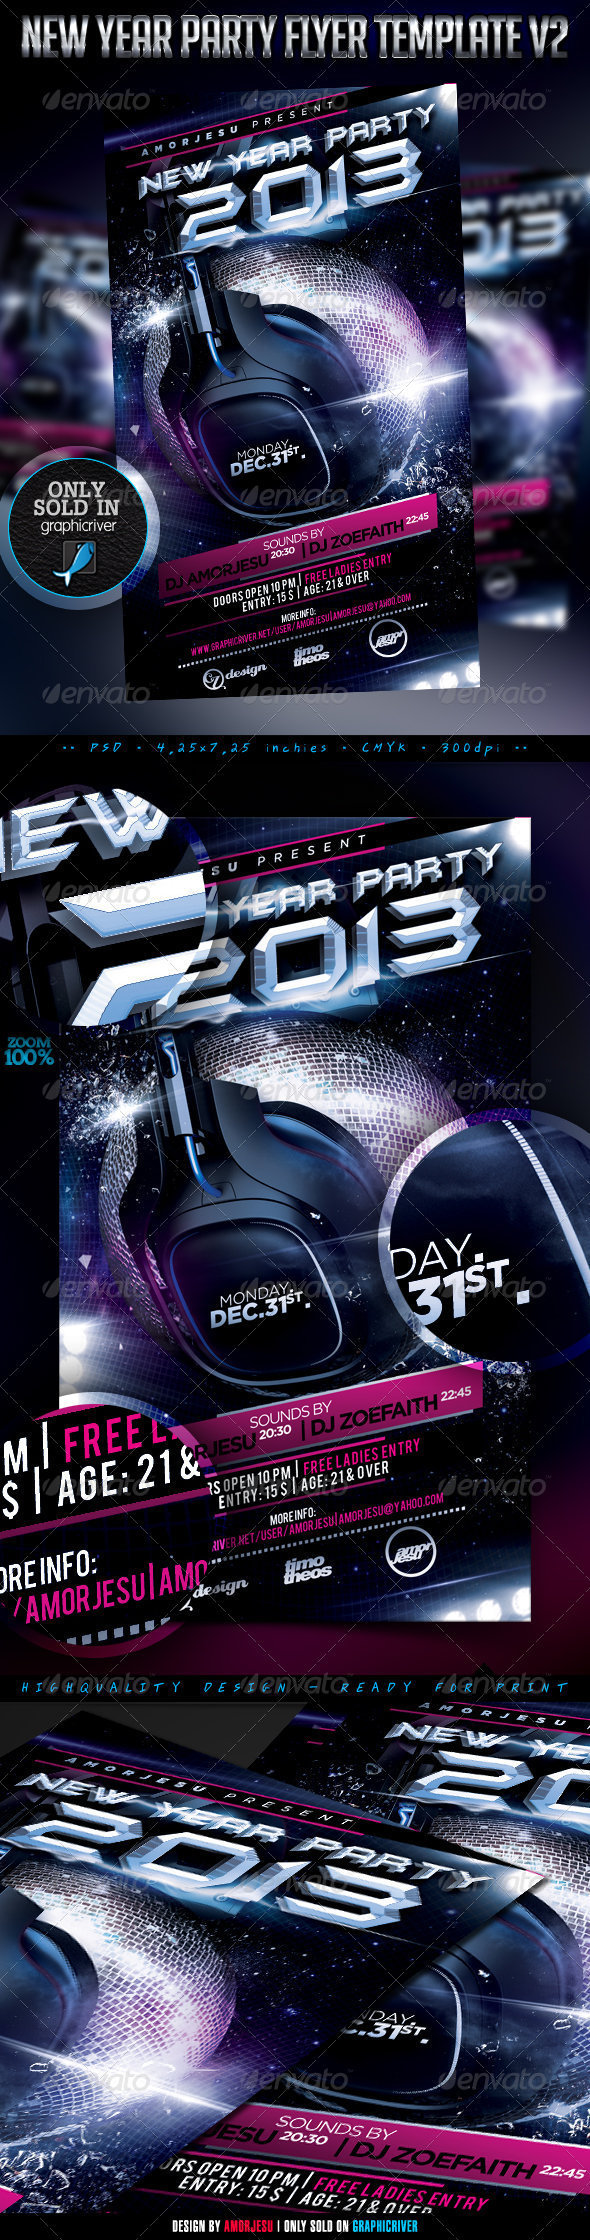 New Year Party Flyer Template V2 - Clubs & Parties Events